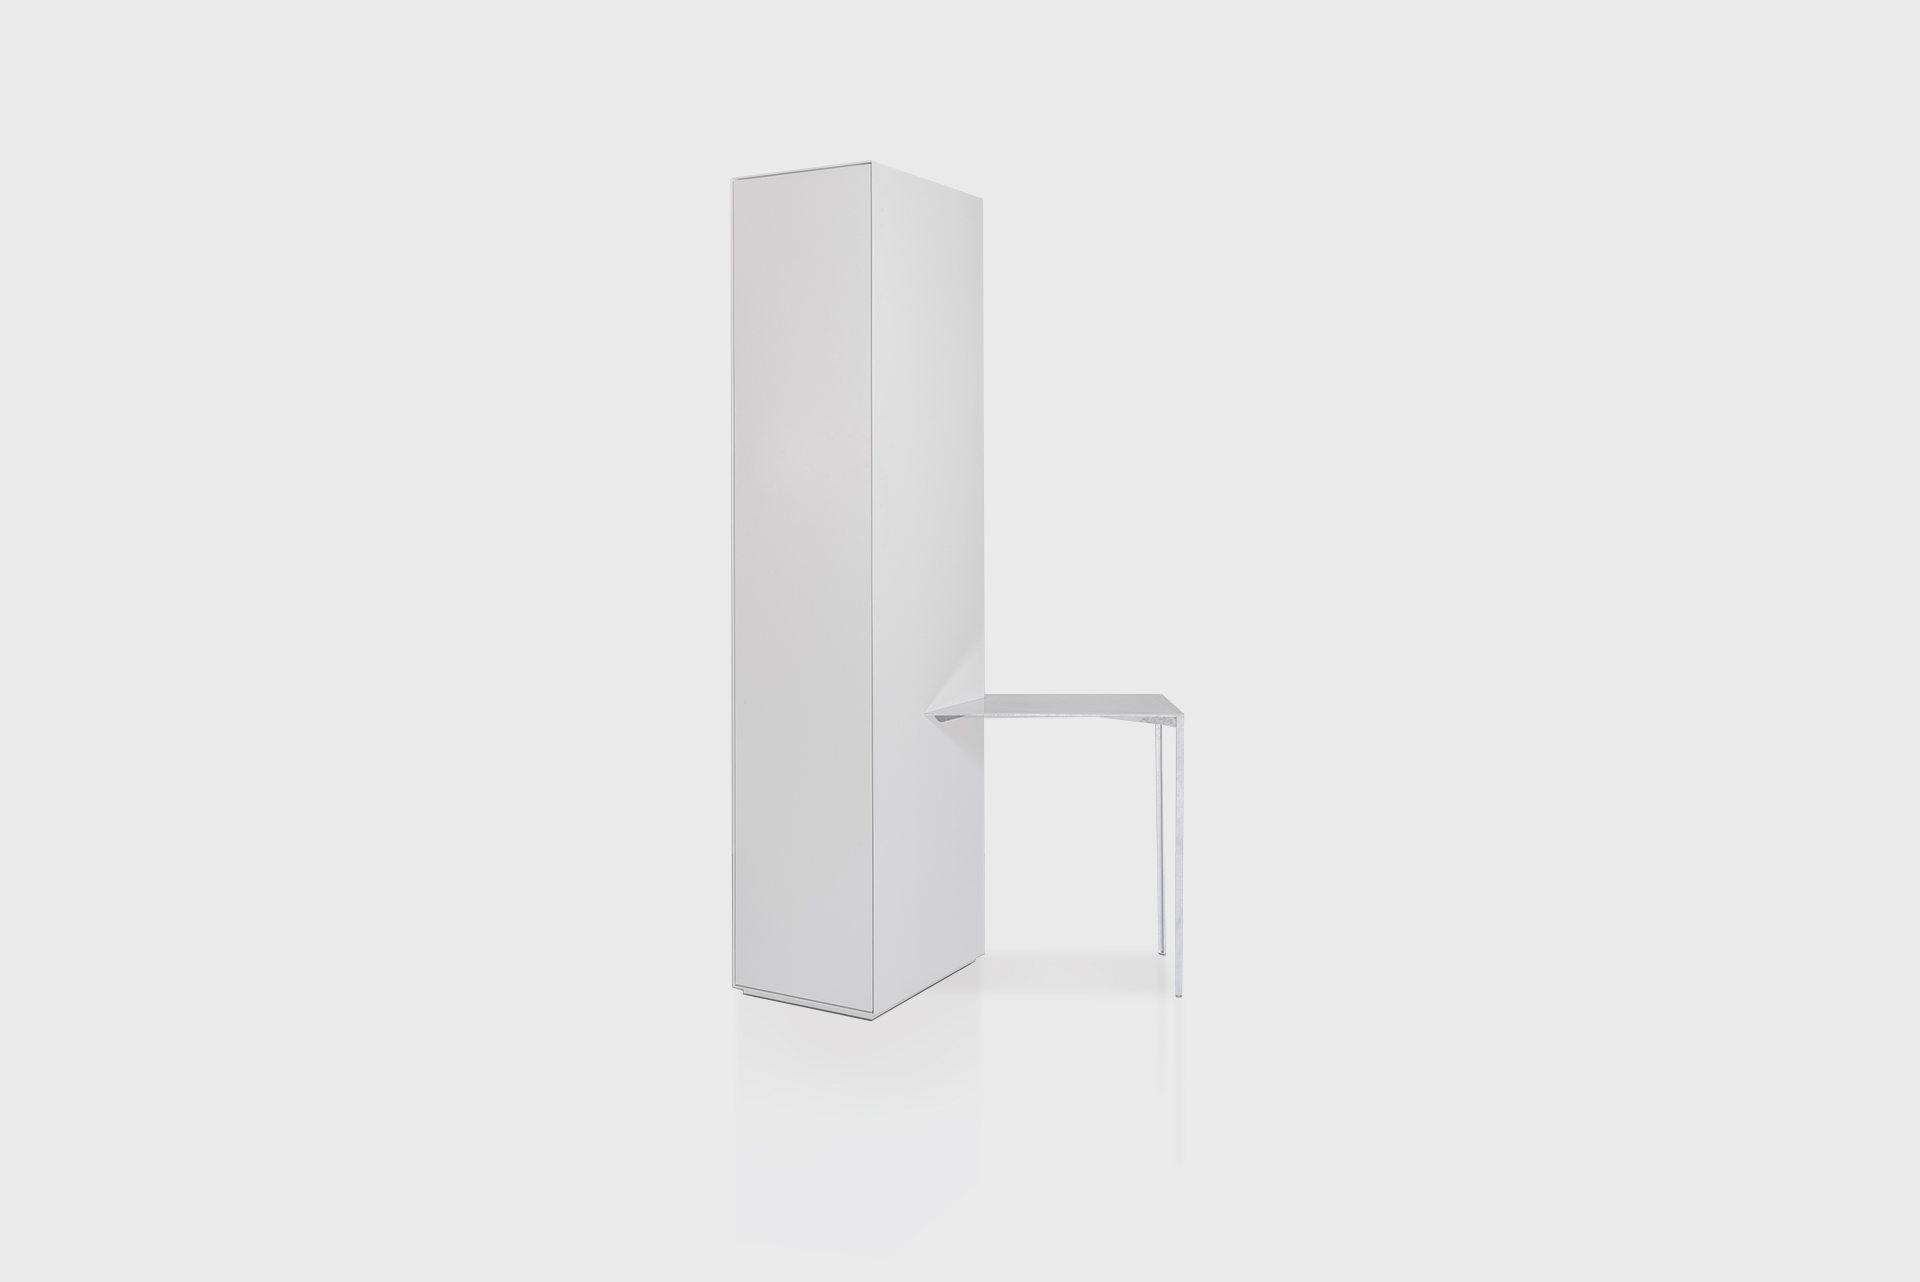 """Storage with Side Table From the series """"Beasts"""" Produced in exclusive for SIDE GALLERY Manufactured by ERTL und ZULL Berlin, 2021 Galvanized steel, white powder-coated steel"""